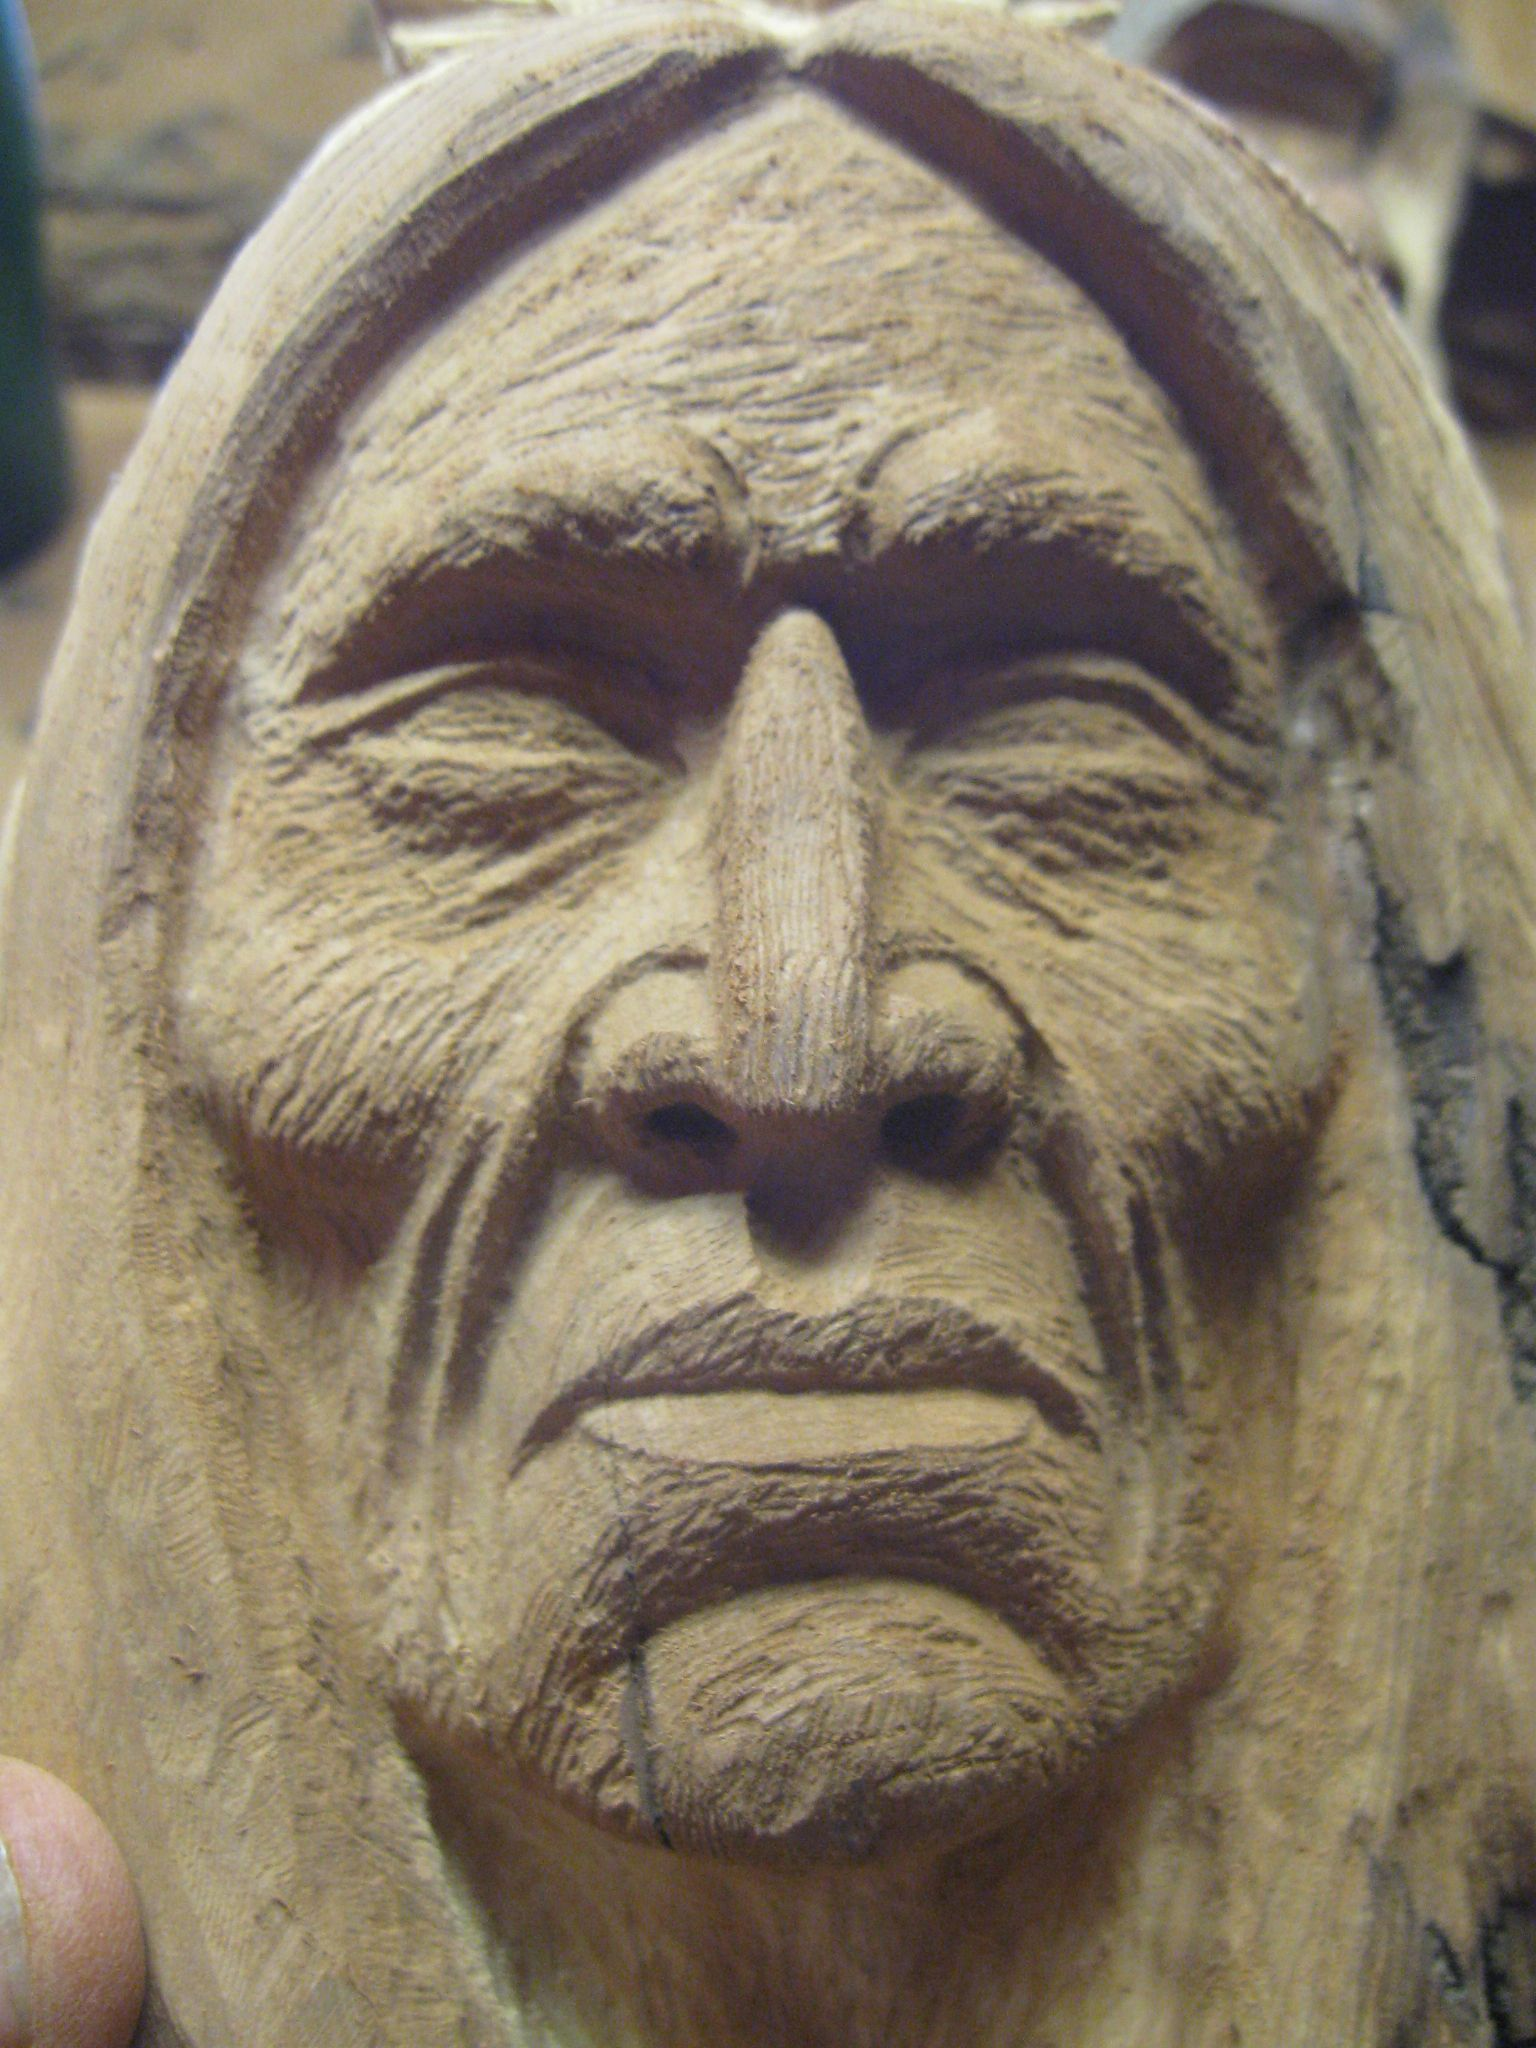 How To Carve Using A Picture Study Of Carving A Native American Indian Wood Carving Designs Wood Carving Faces Wood Carving Patterns